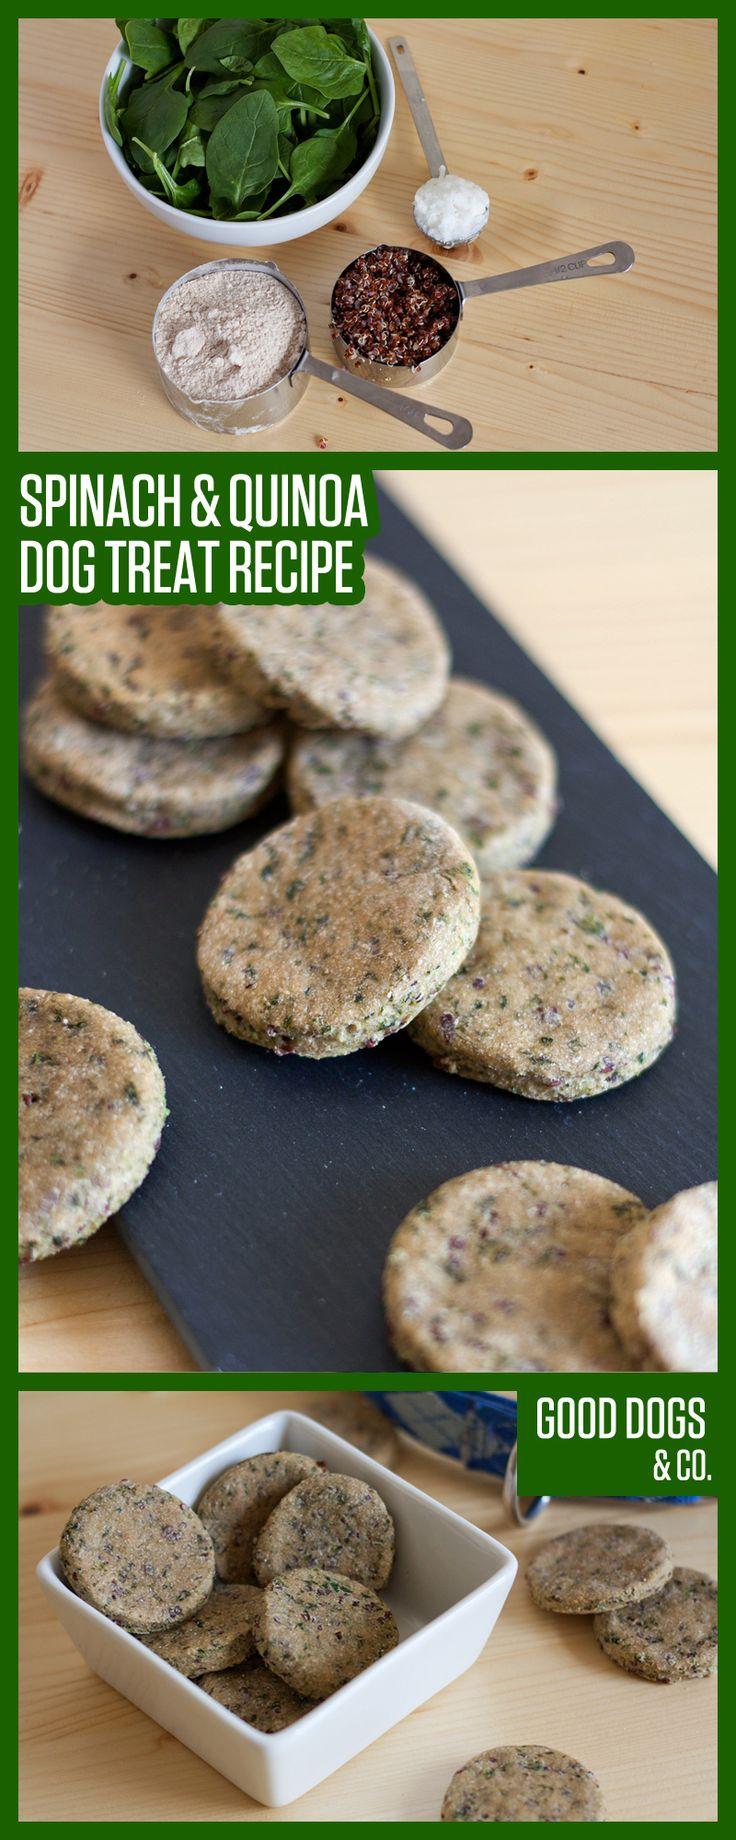 This dog treat recipe is sure to please: quinoa and spinach dog treats pack extra nutrients for your dog's diet!